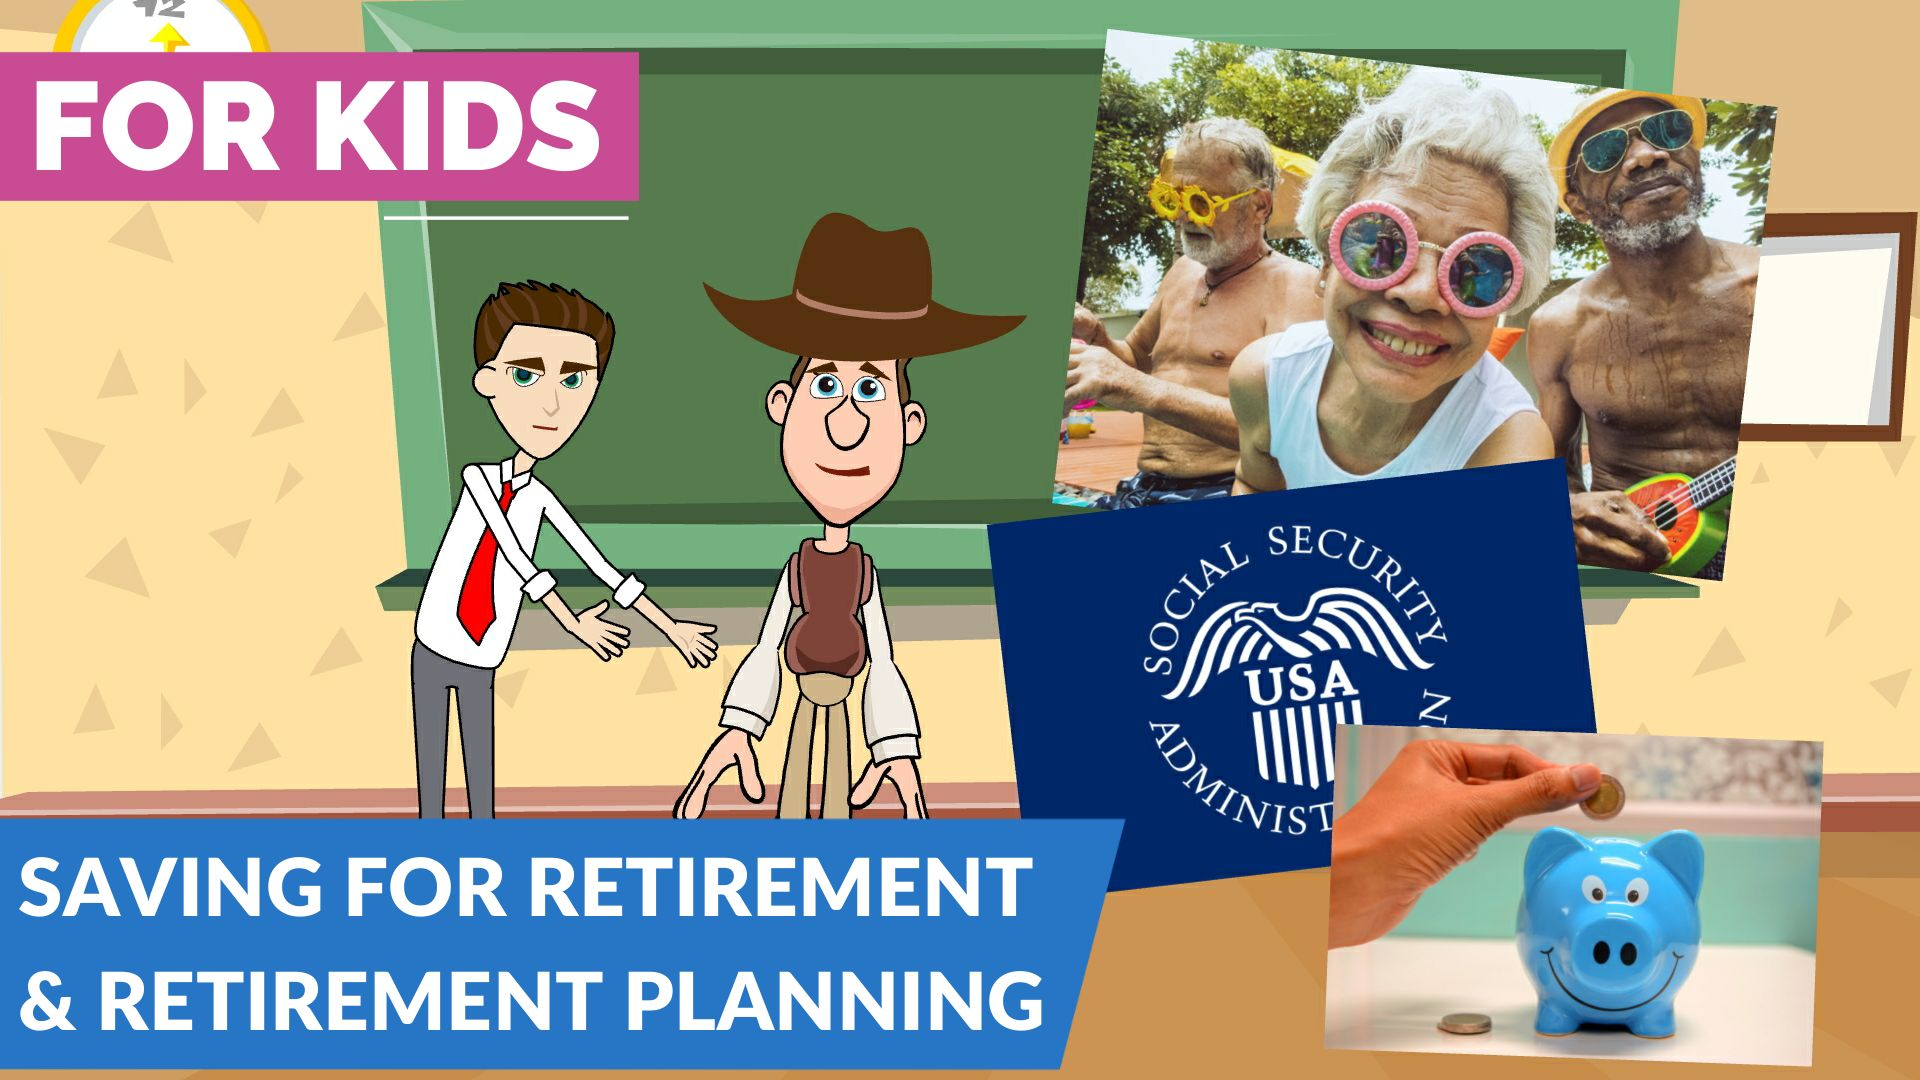 Saving for Retirement - Retirement Planning